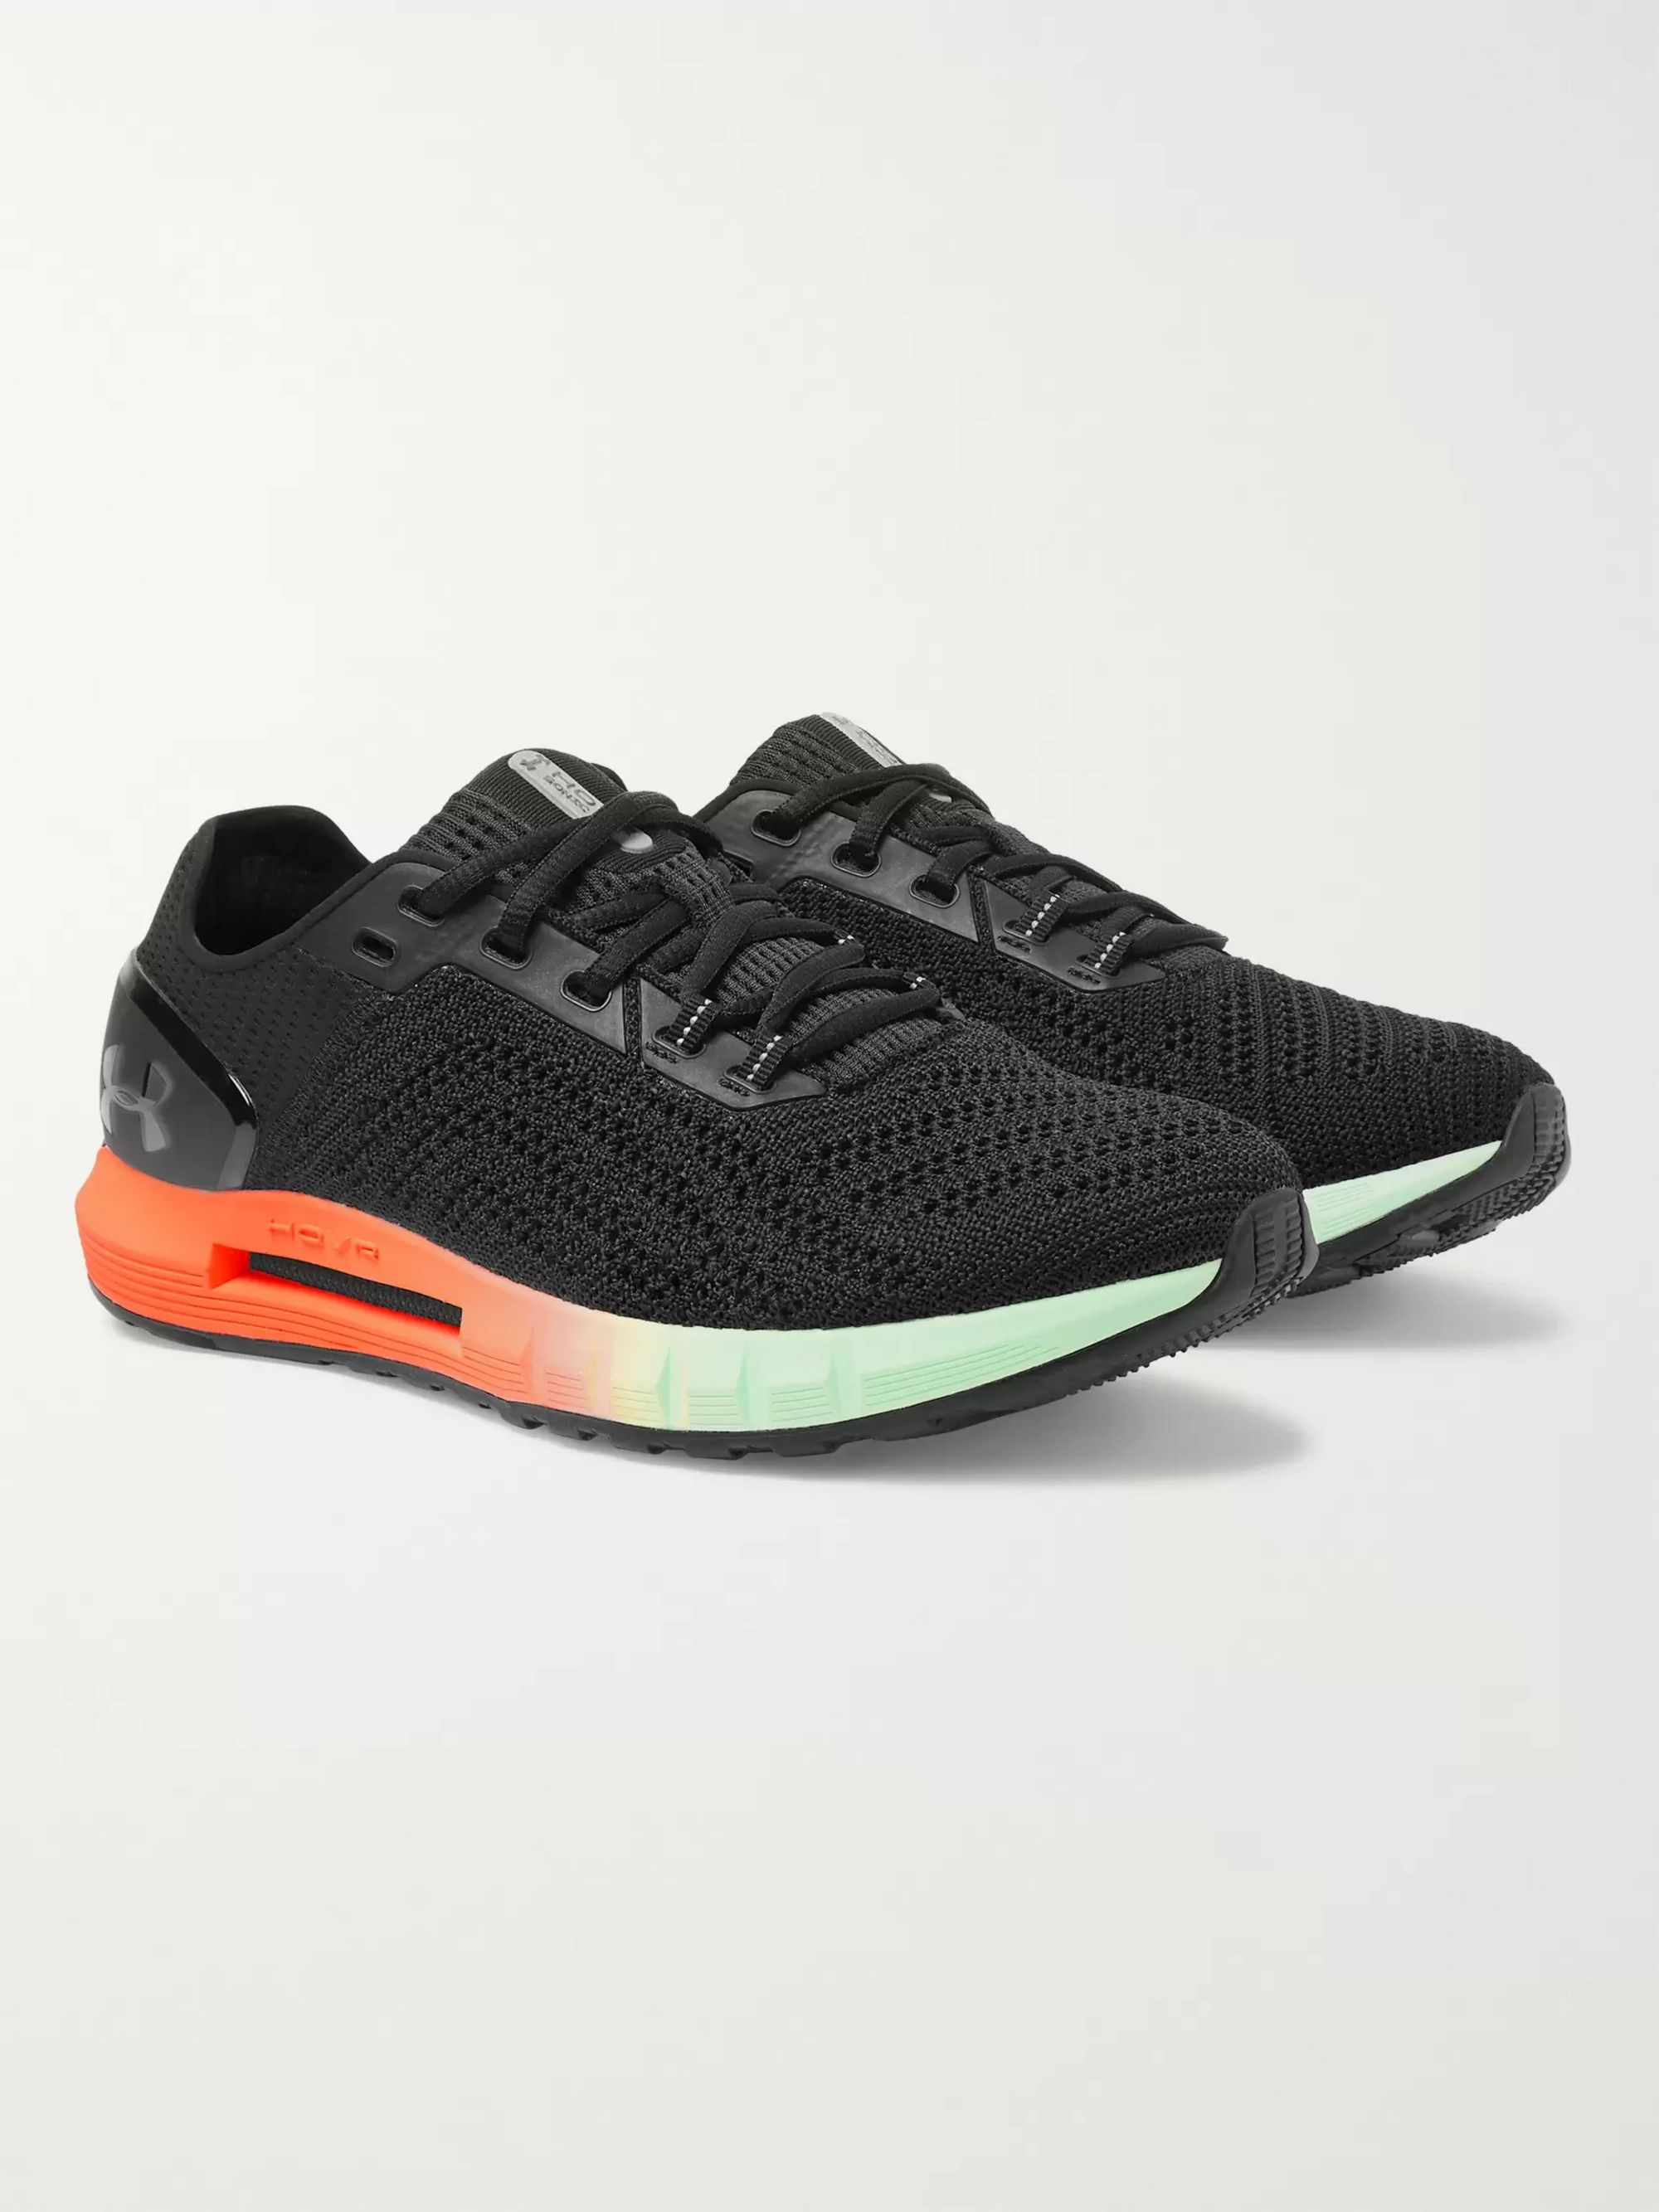 Under Armour HOVR Sonic 2 Stretch-Knit Running Sneakers